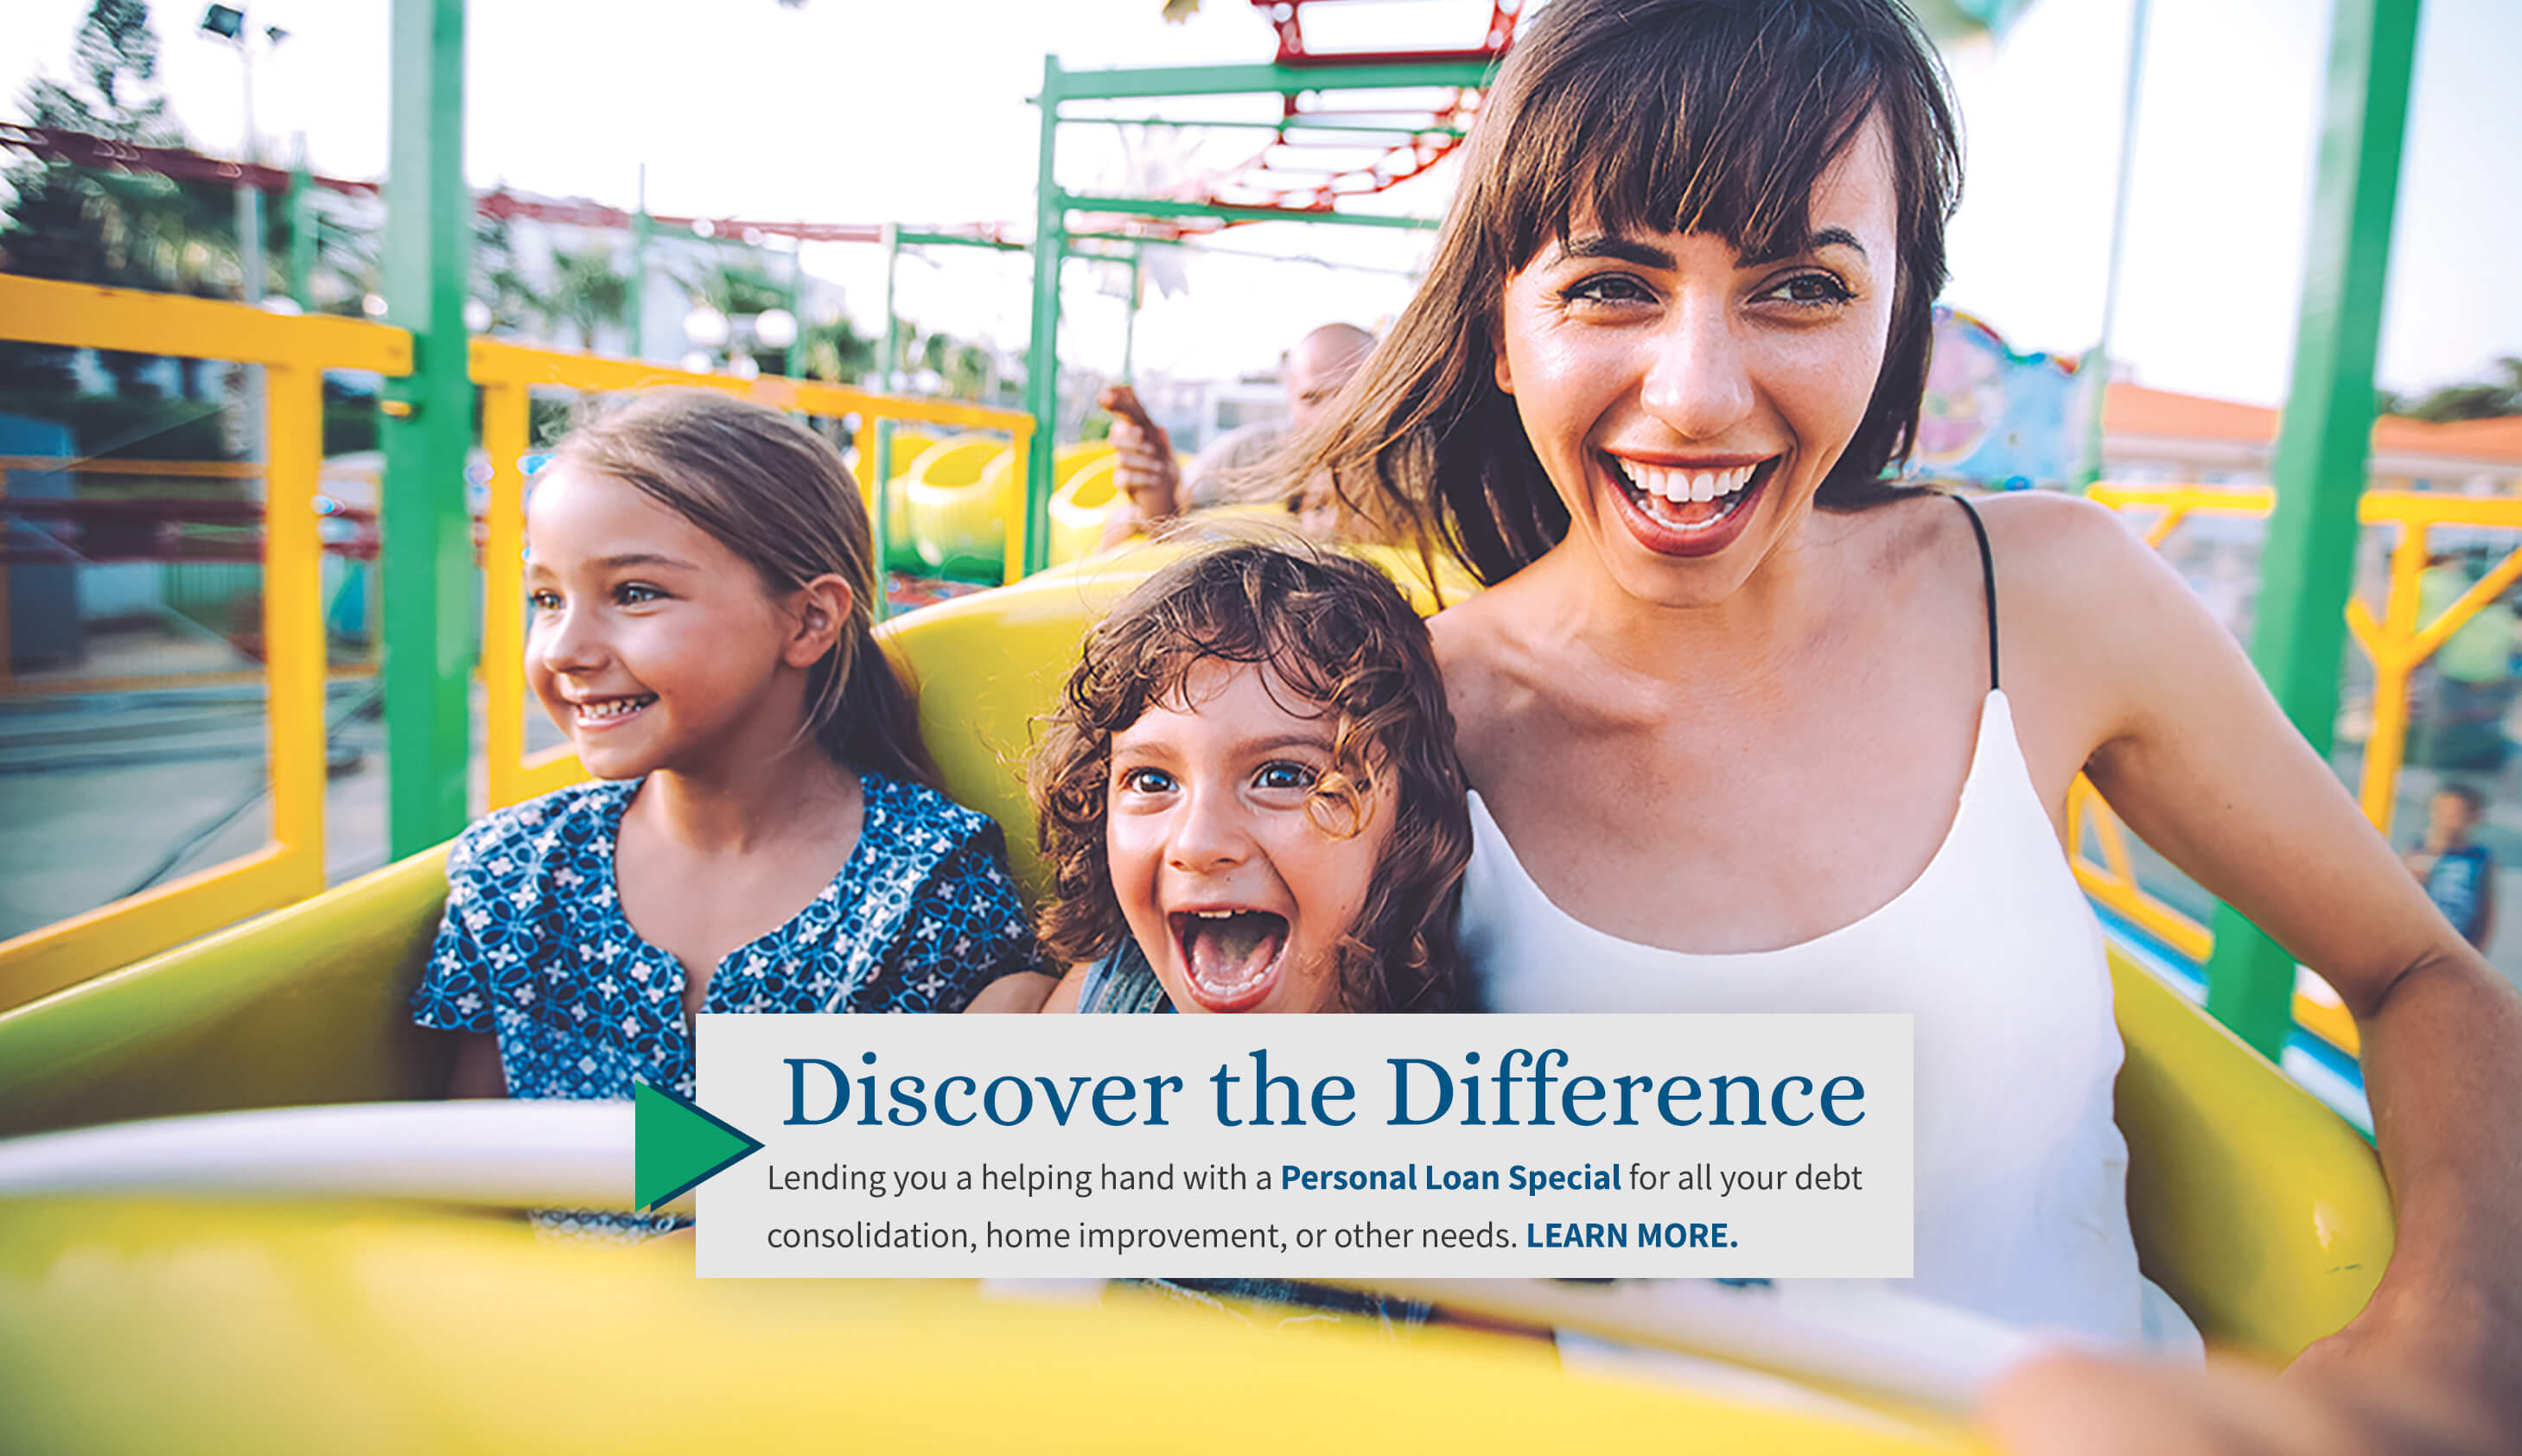 Discover the Difference. Lending you a helping hand with a Personal Loan Special for all your debt consolidation, home improvement, or other needs. Learn More.